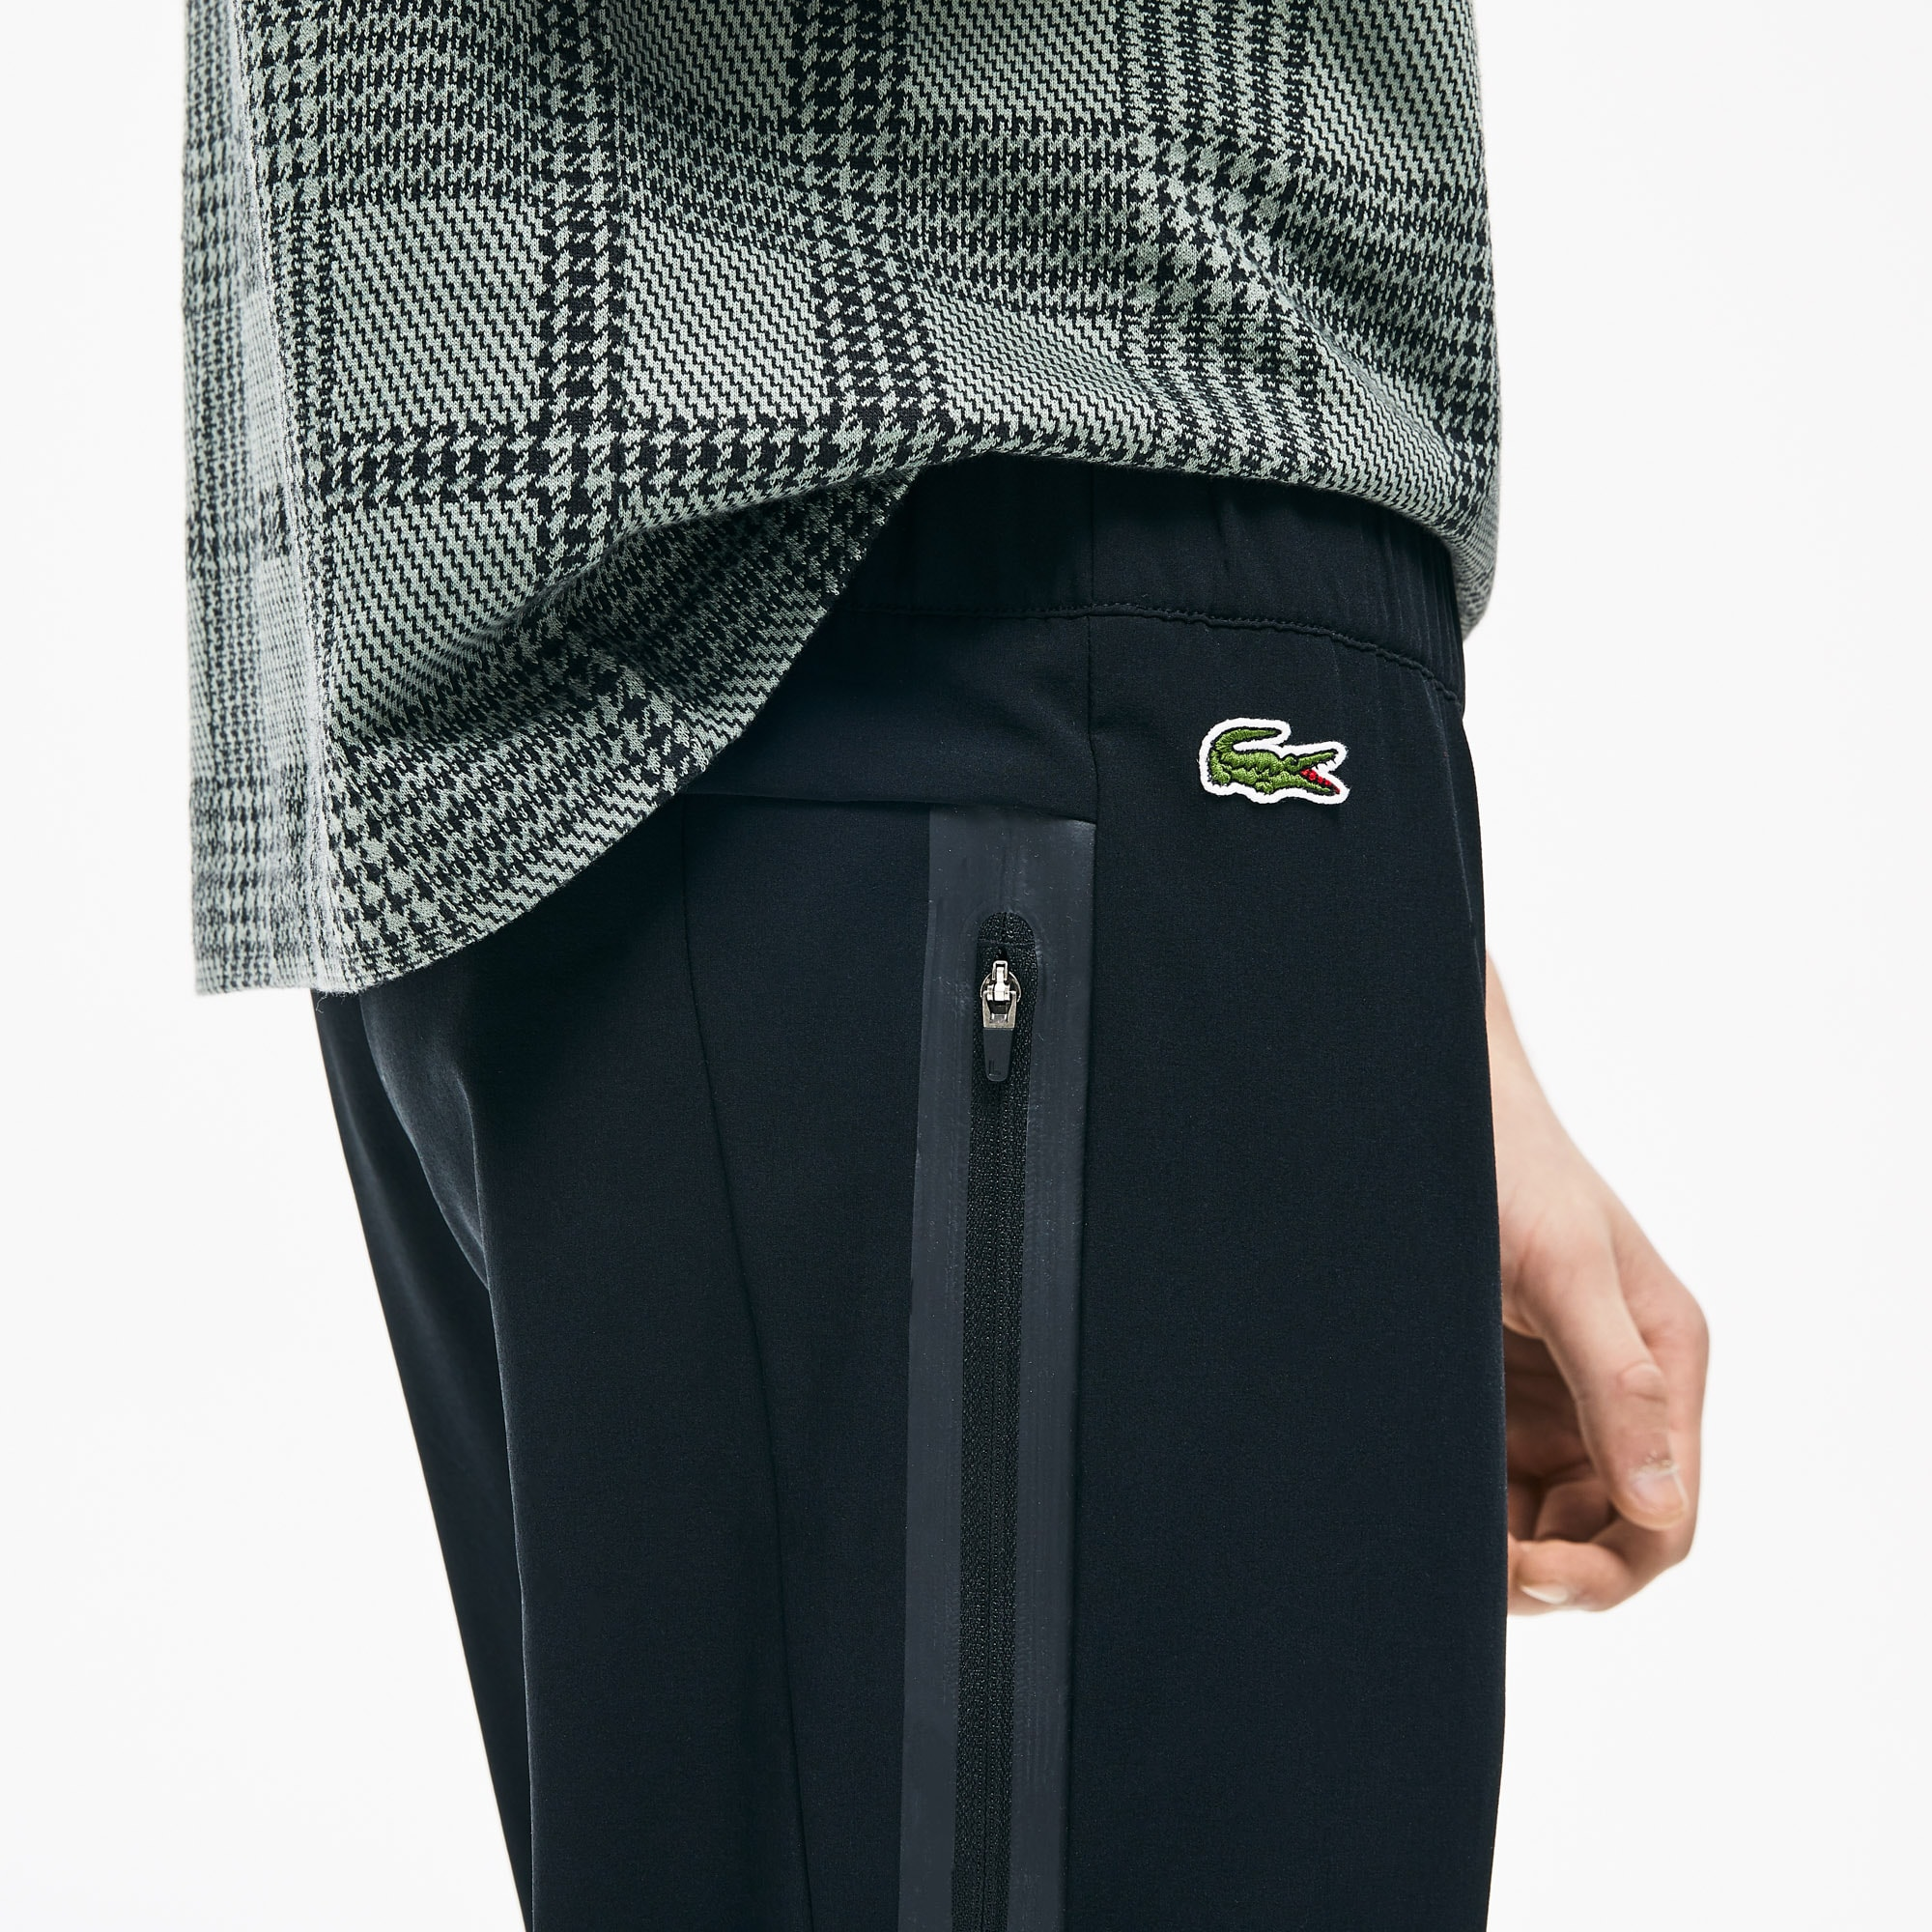 Men's Lacoste SPORT Breathable Stretch Sweatpants